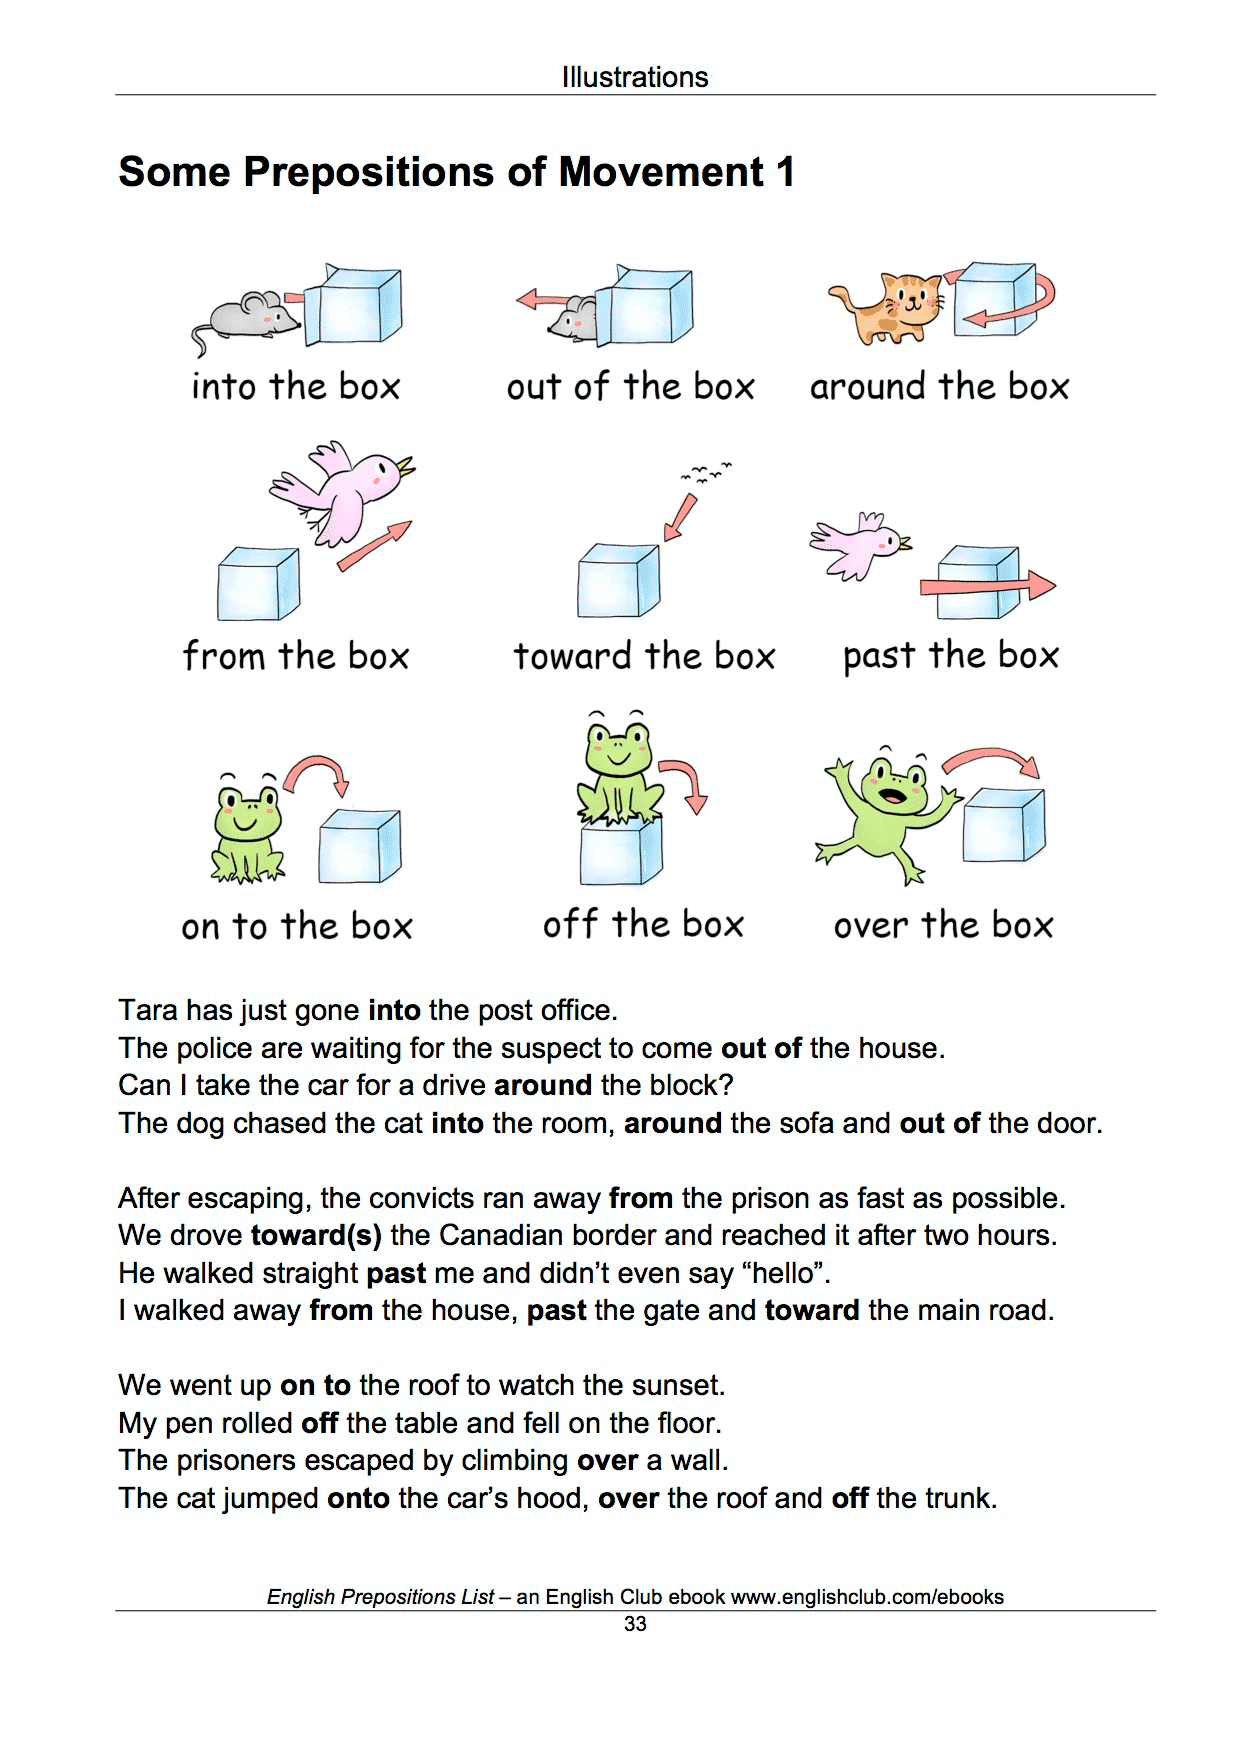 English Prepositions List Ebook By Josef Essberger